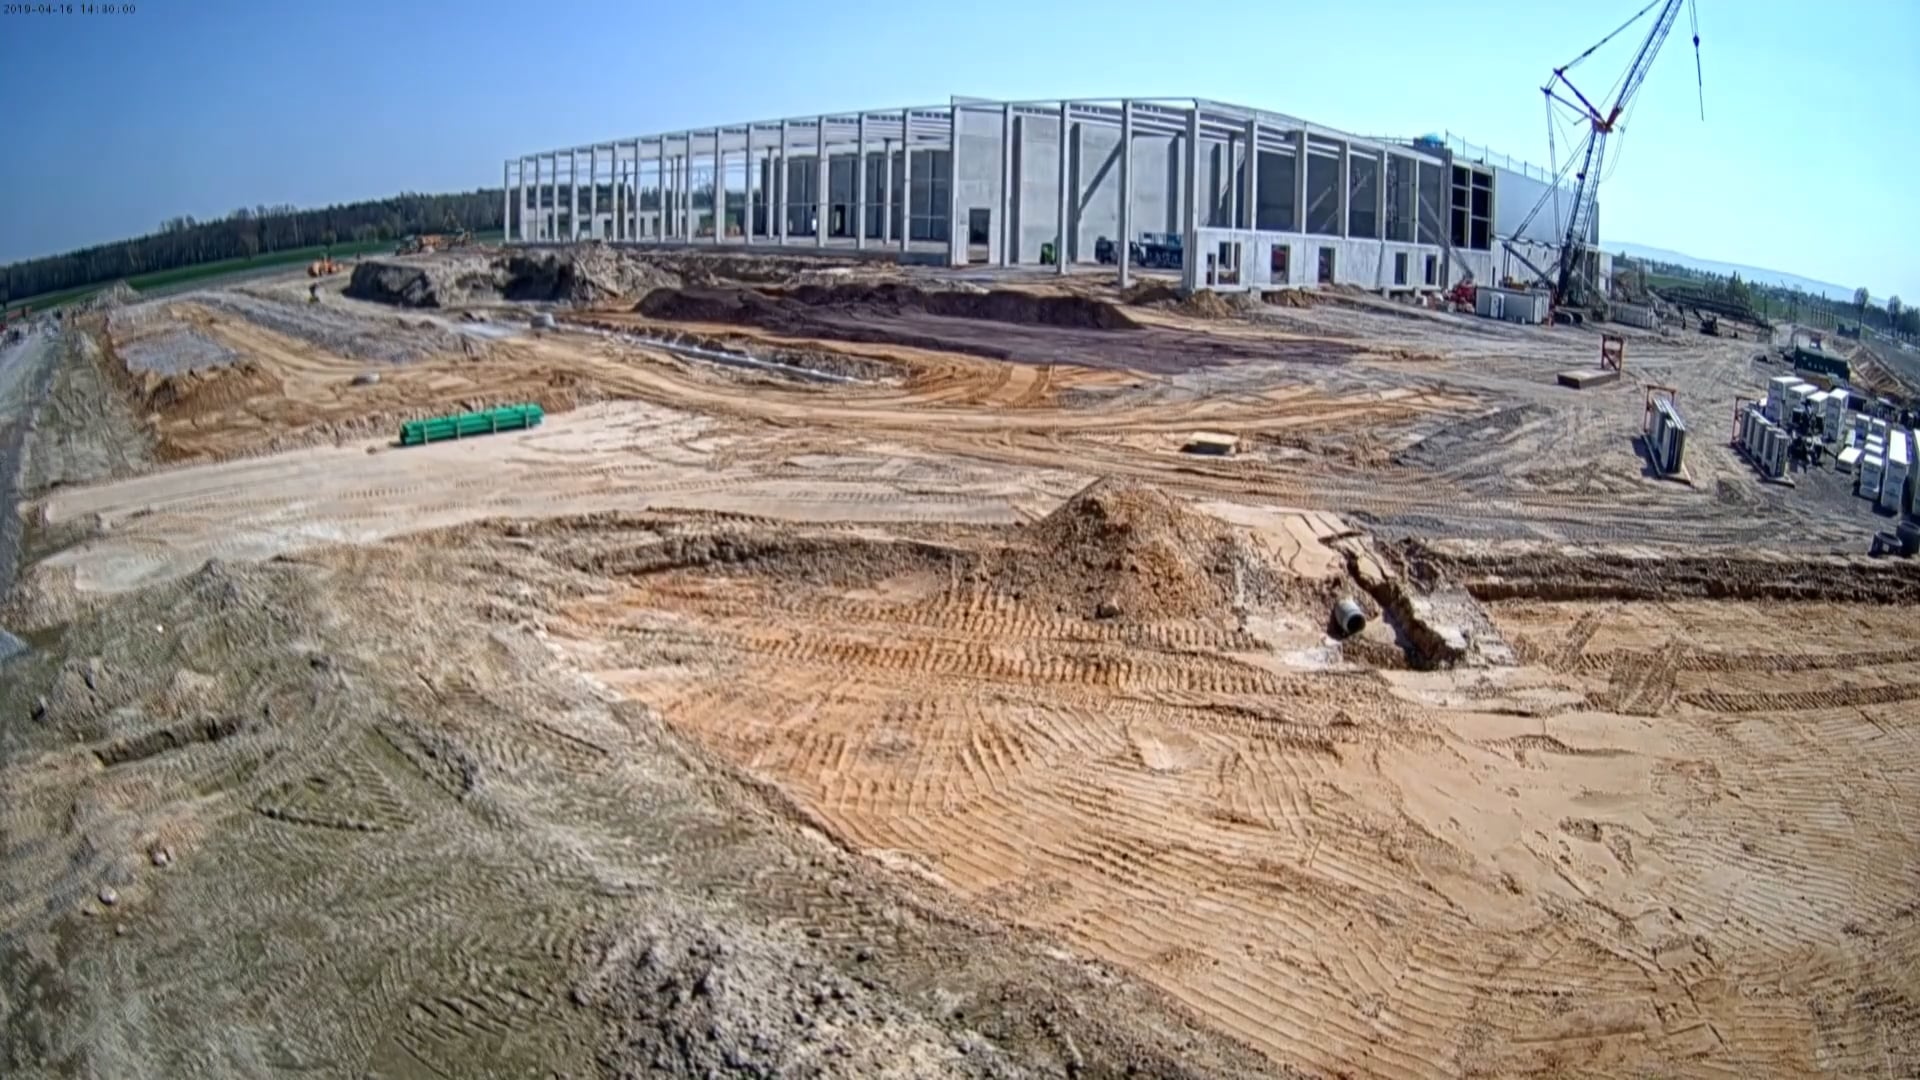 In Action - Timelapse Of HAVI DC Construction In Germany